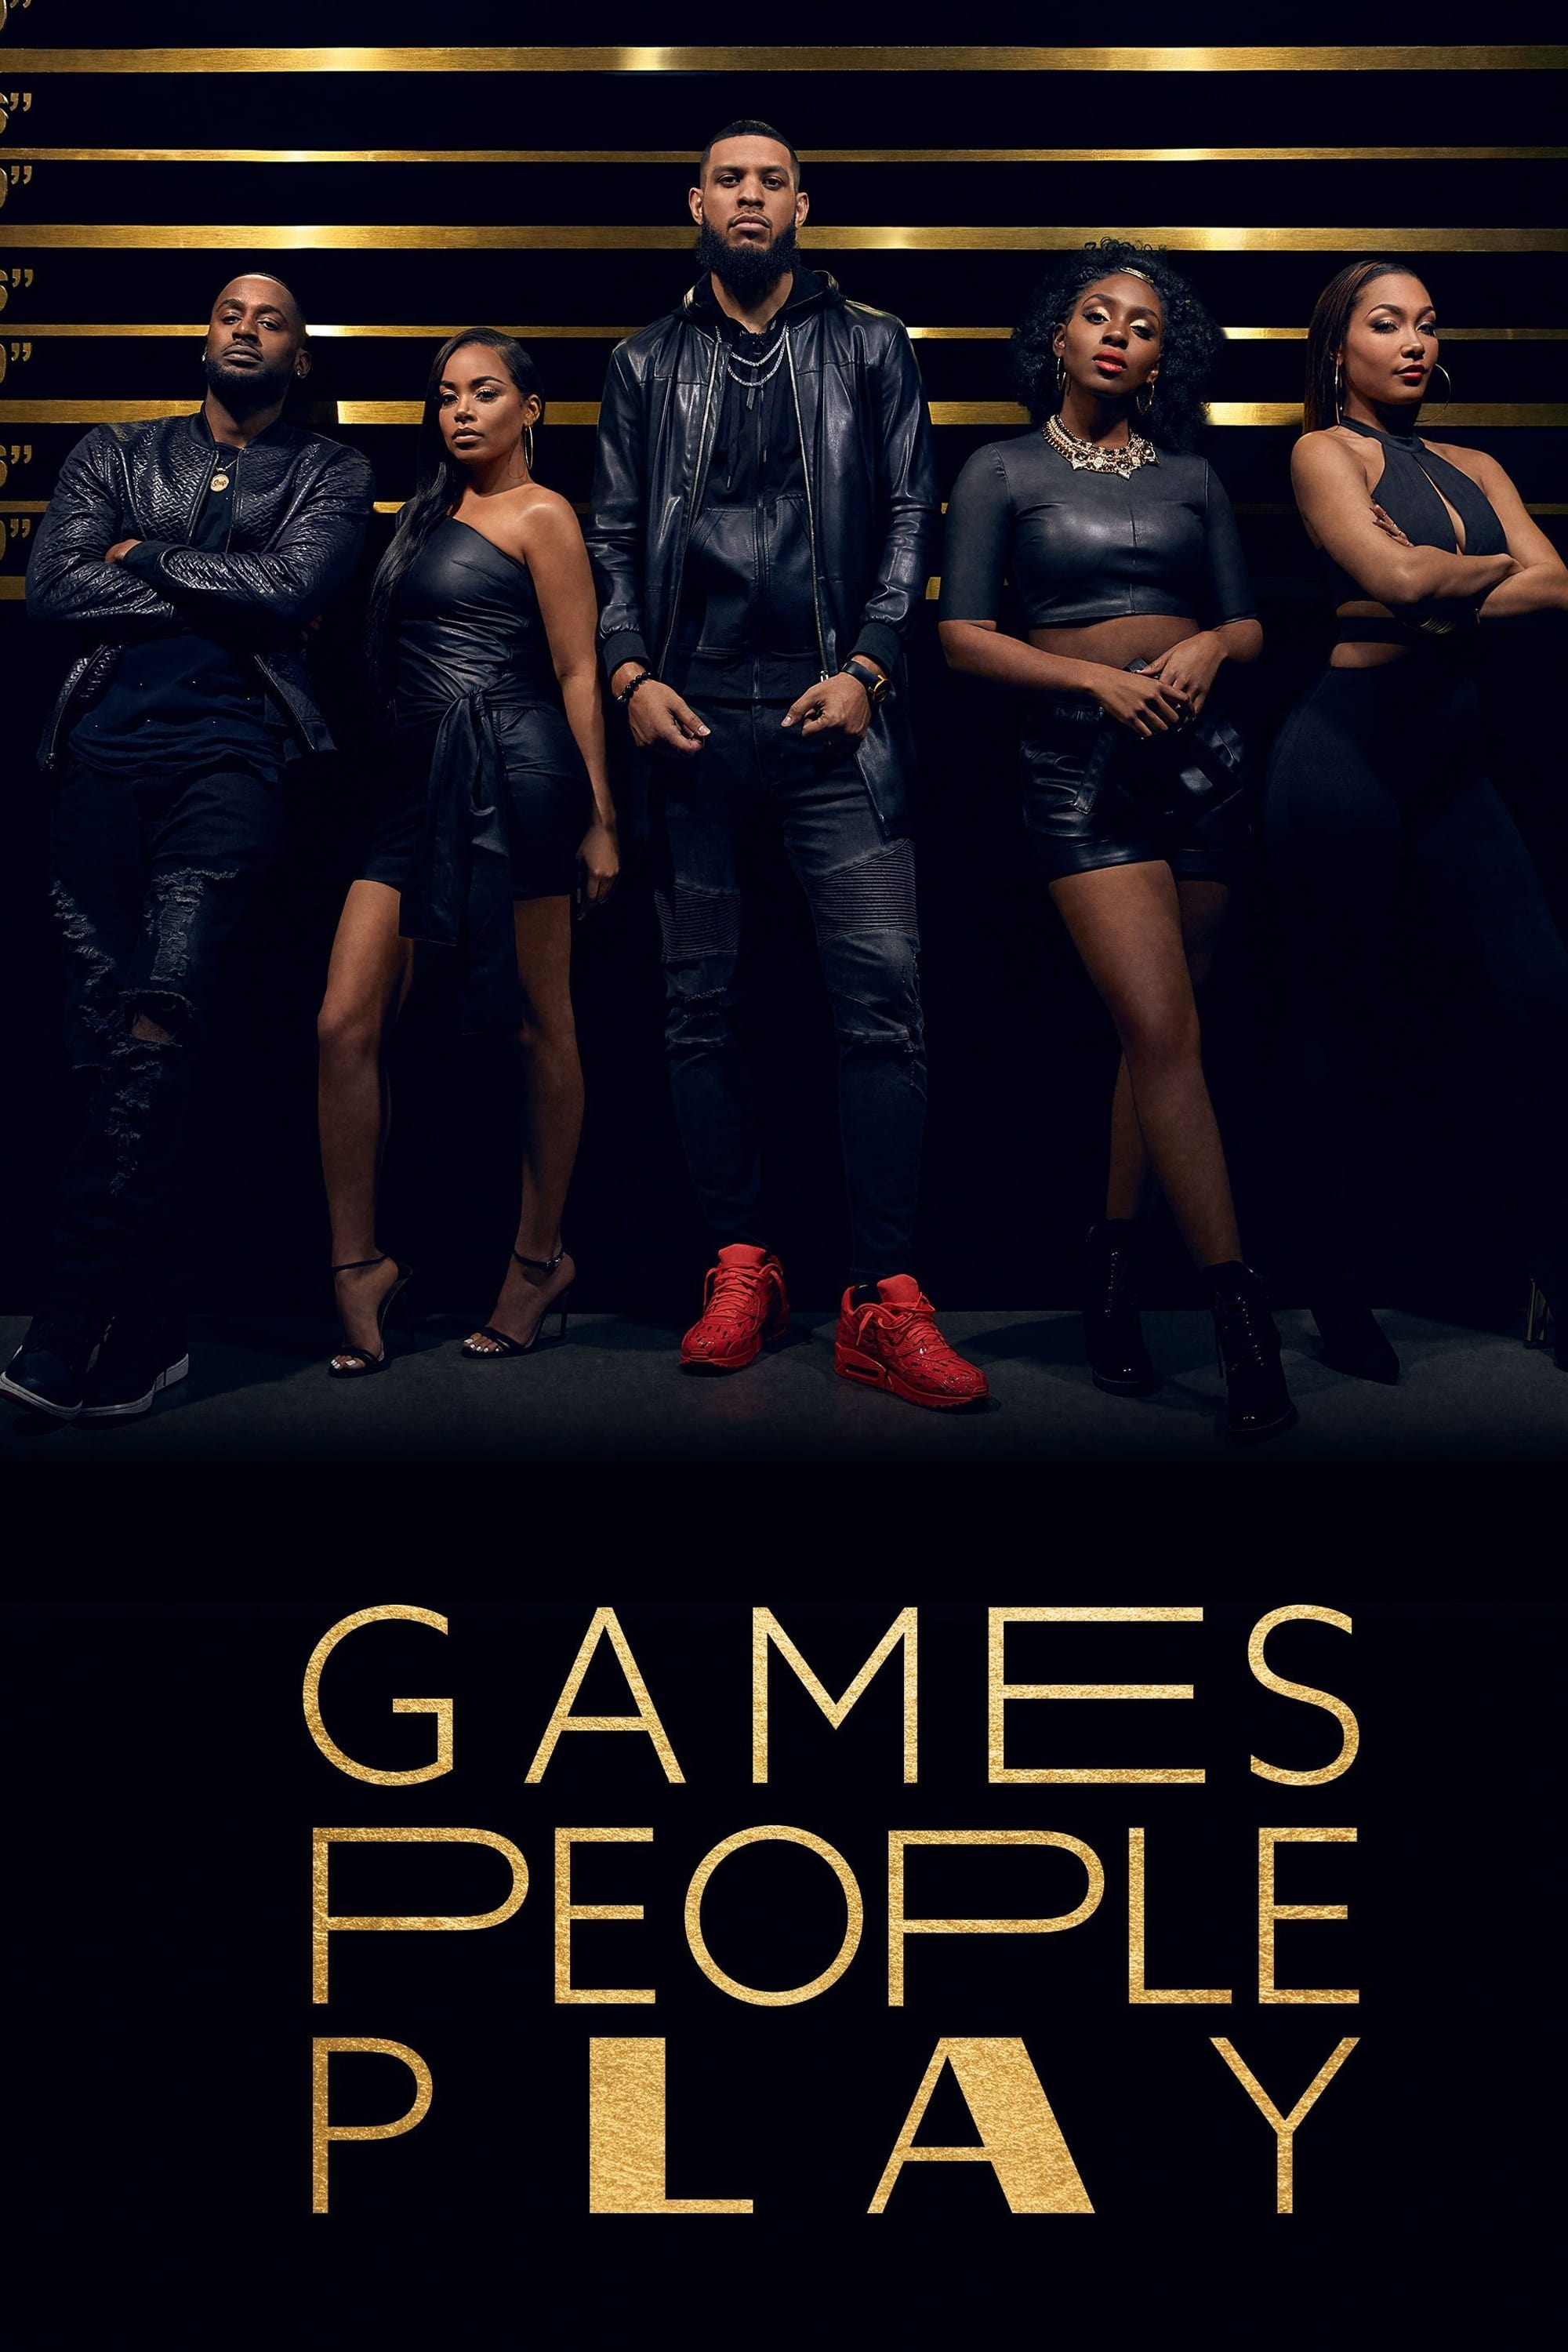 Games People Play (2019)